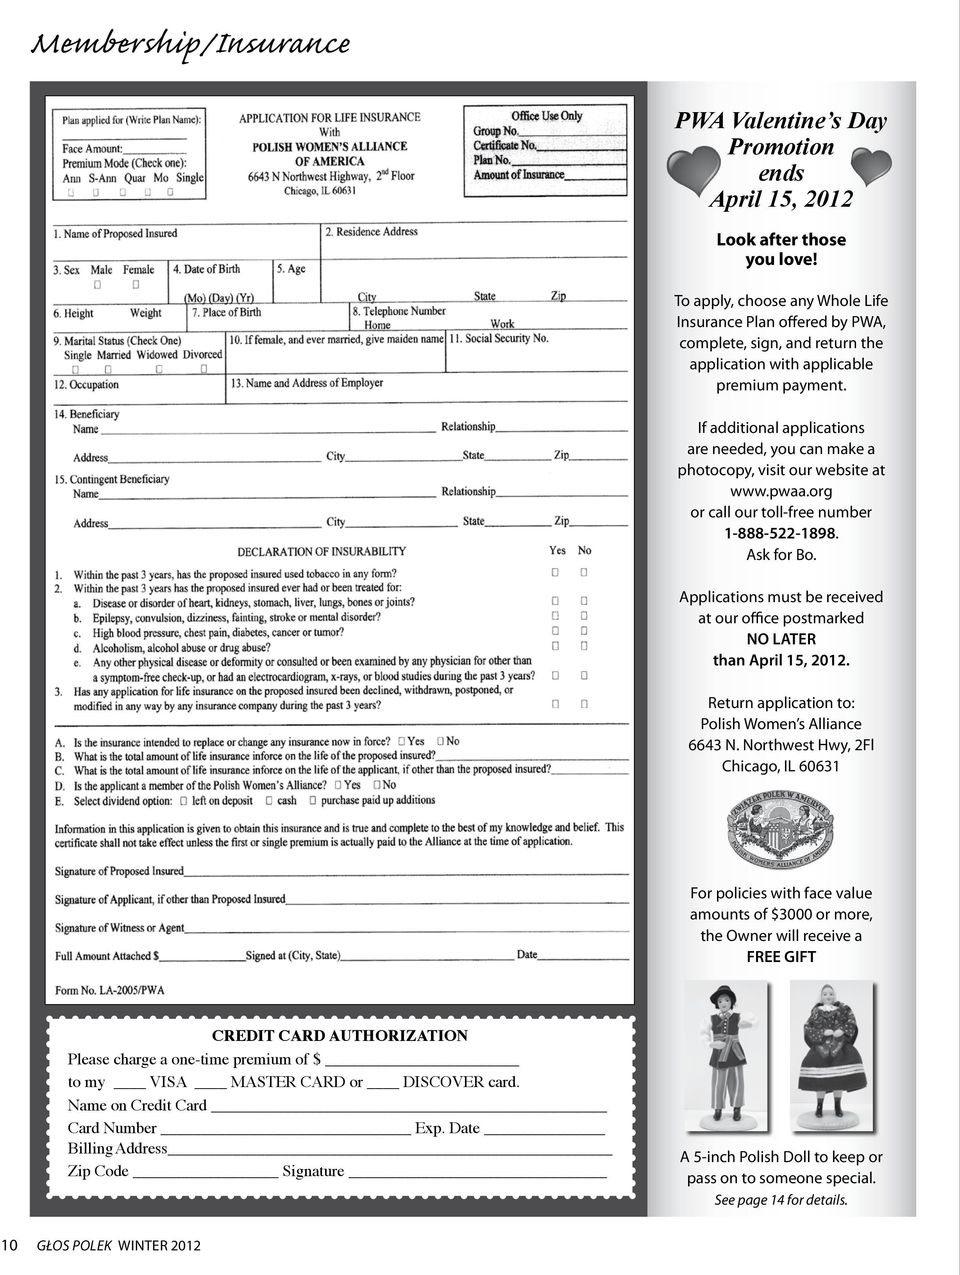 If additional applications are needed, you can make a photocopy, visit our website at www.pwaa.org or call our toll-free number 1-888-522-1898. Ask for Bo.